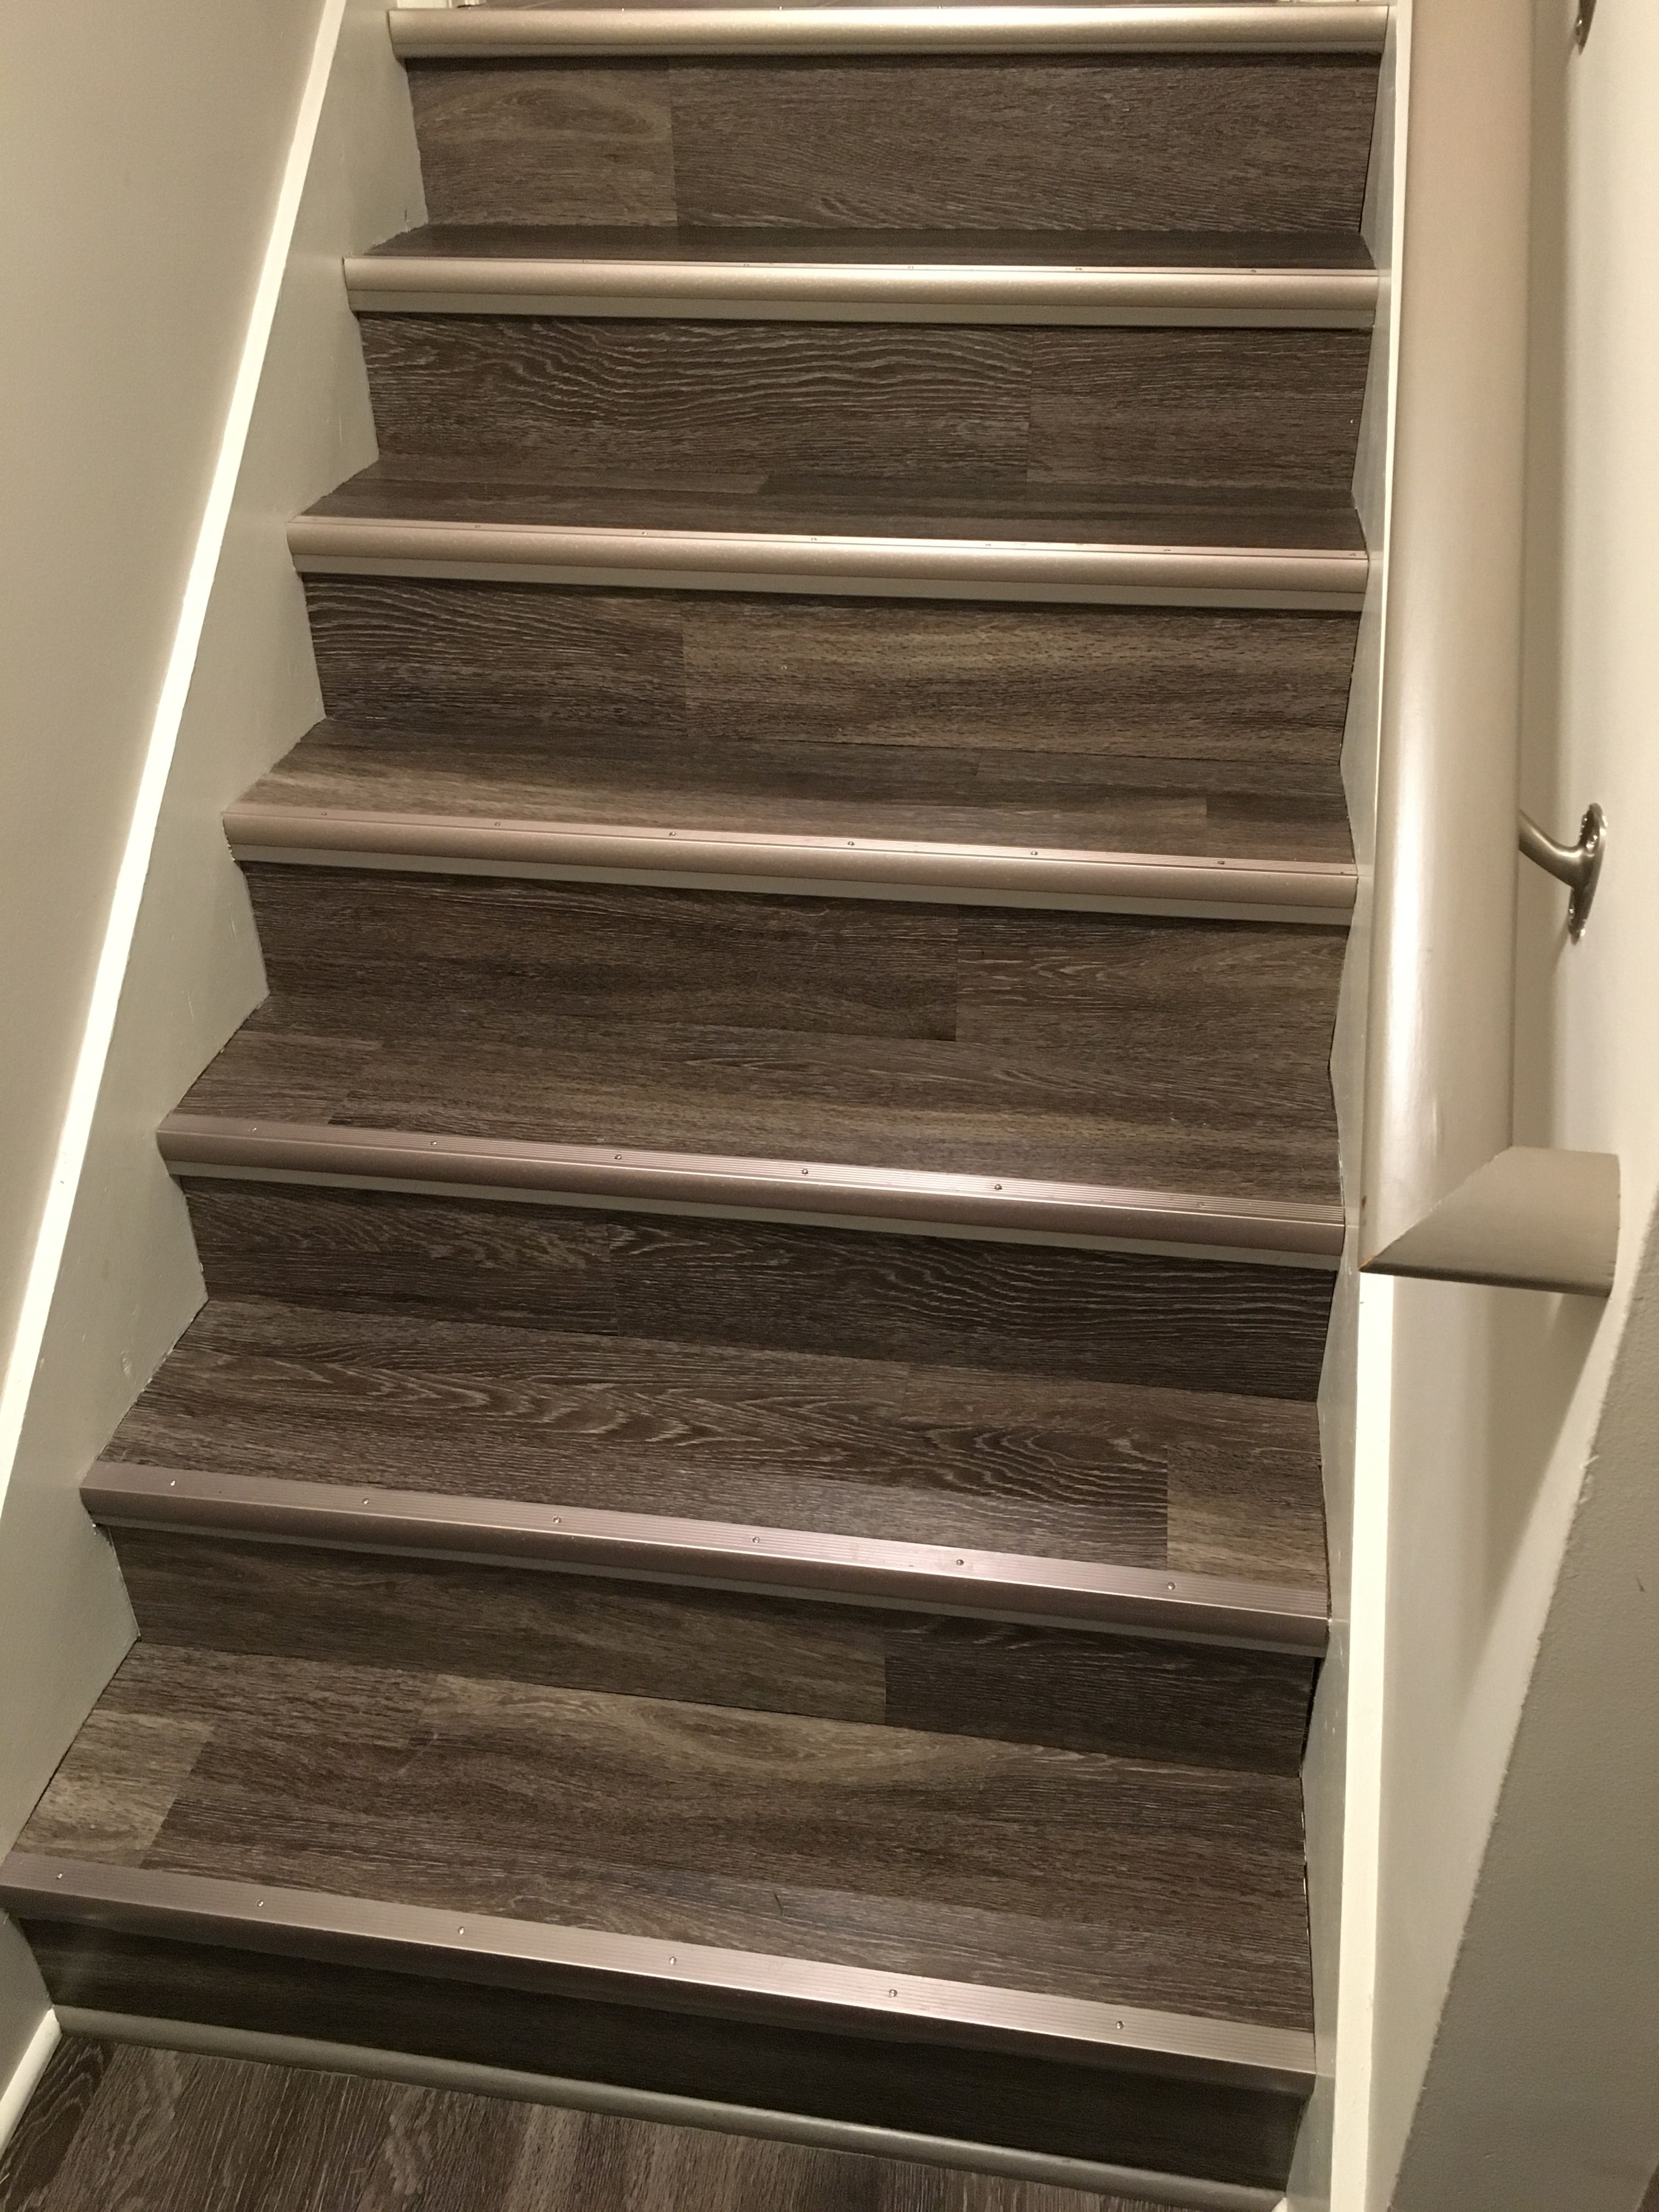 Best Pin By Cathy Simos On Indoor Decor Flooring For Stairs 400 x 300